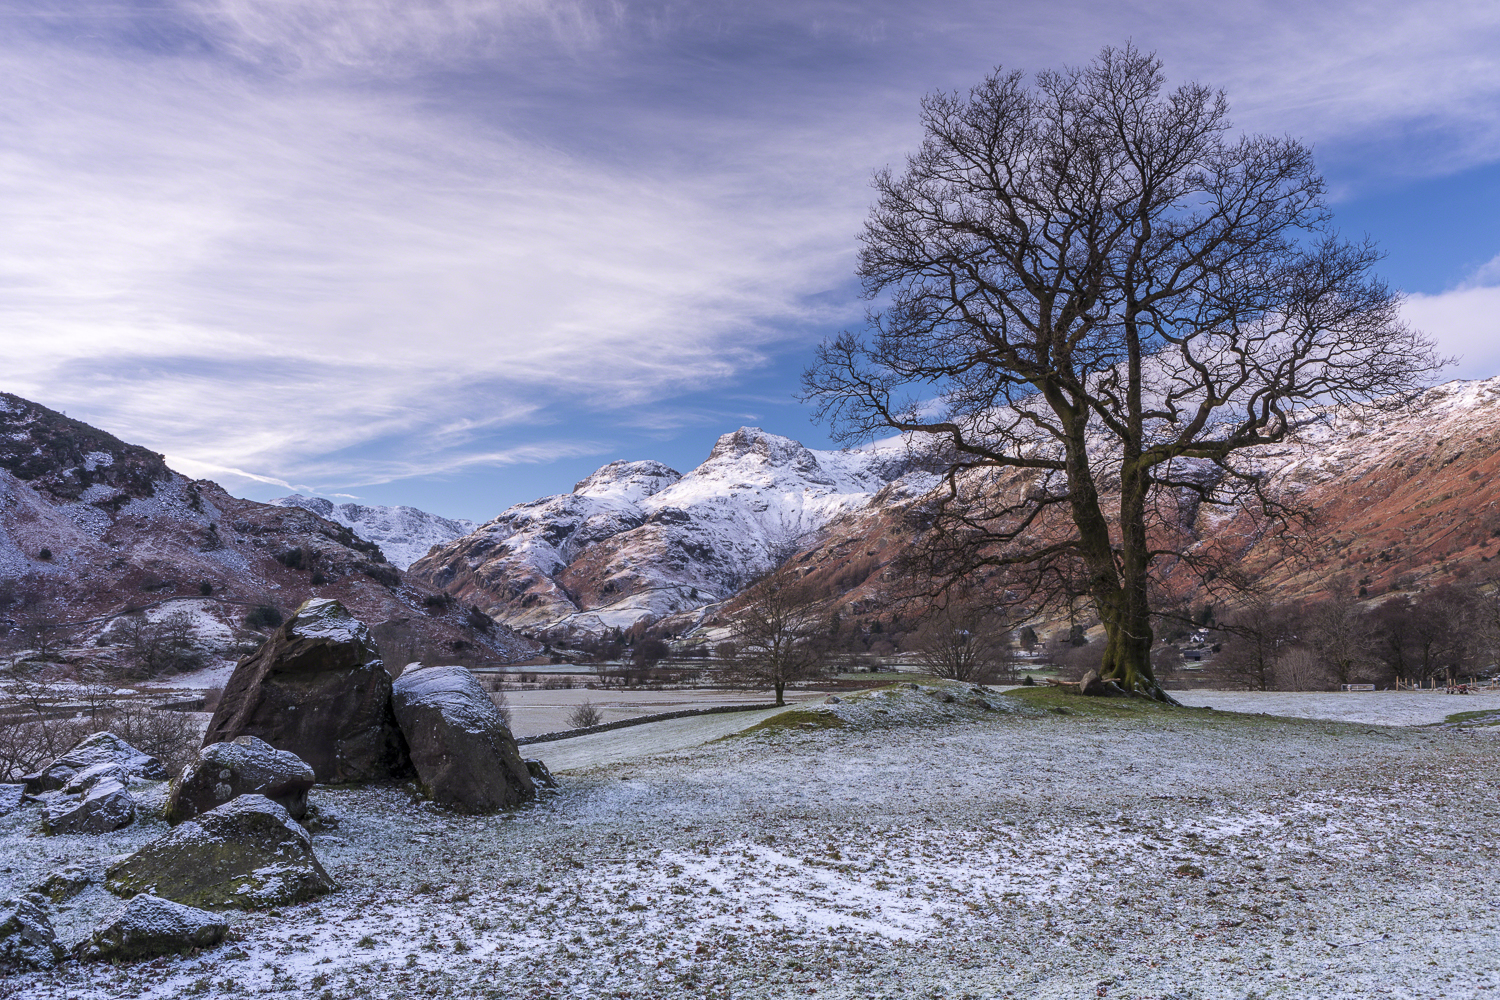 Langdale Boulders to the Langdale Pikes, Lake District - 13:58 10th December 2017